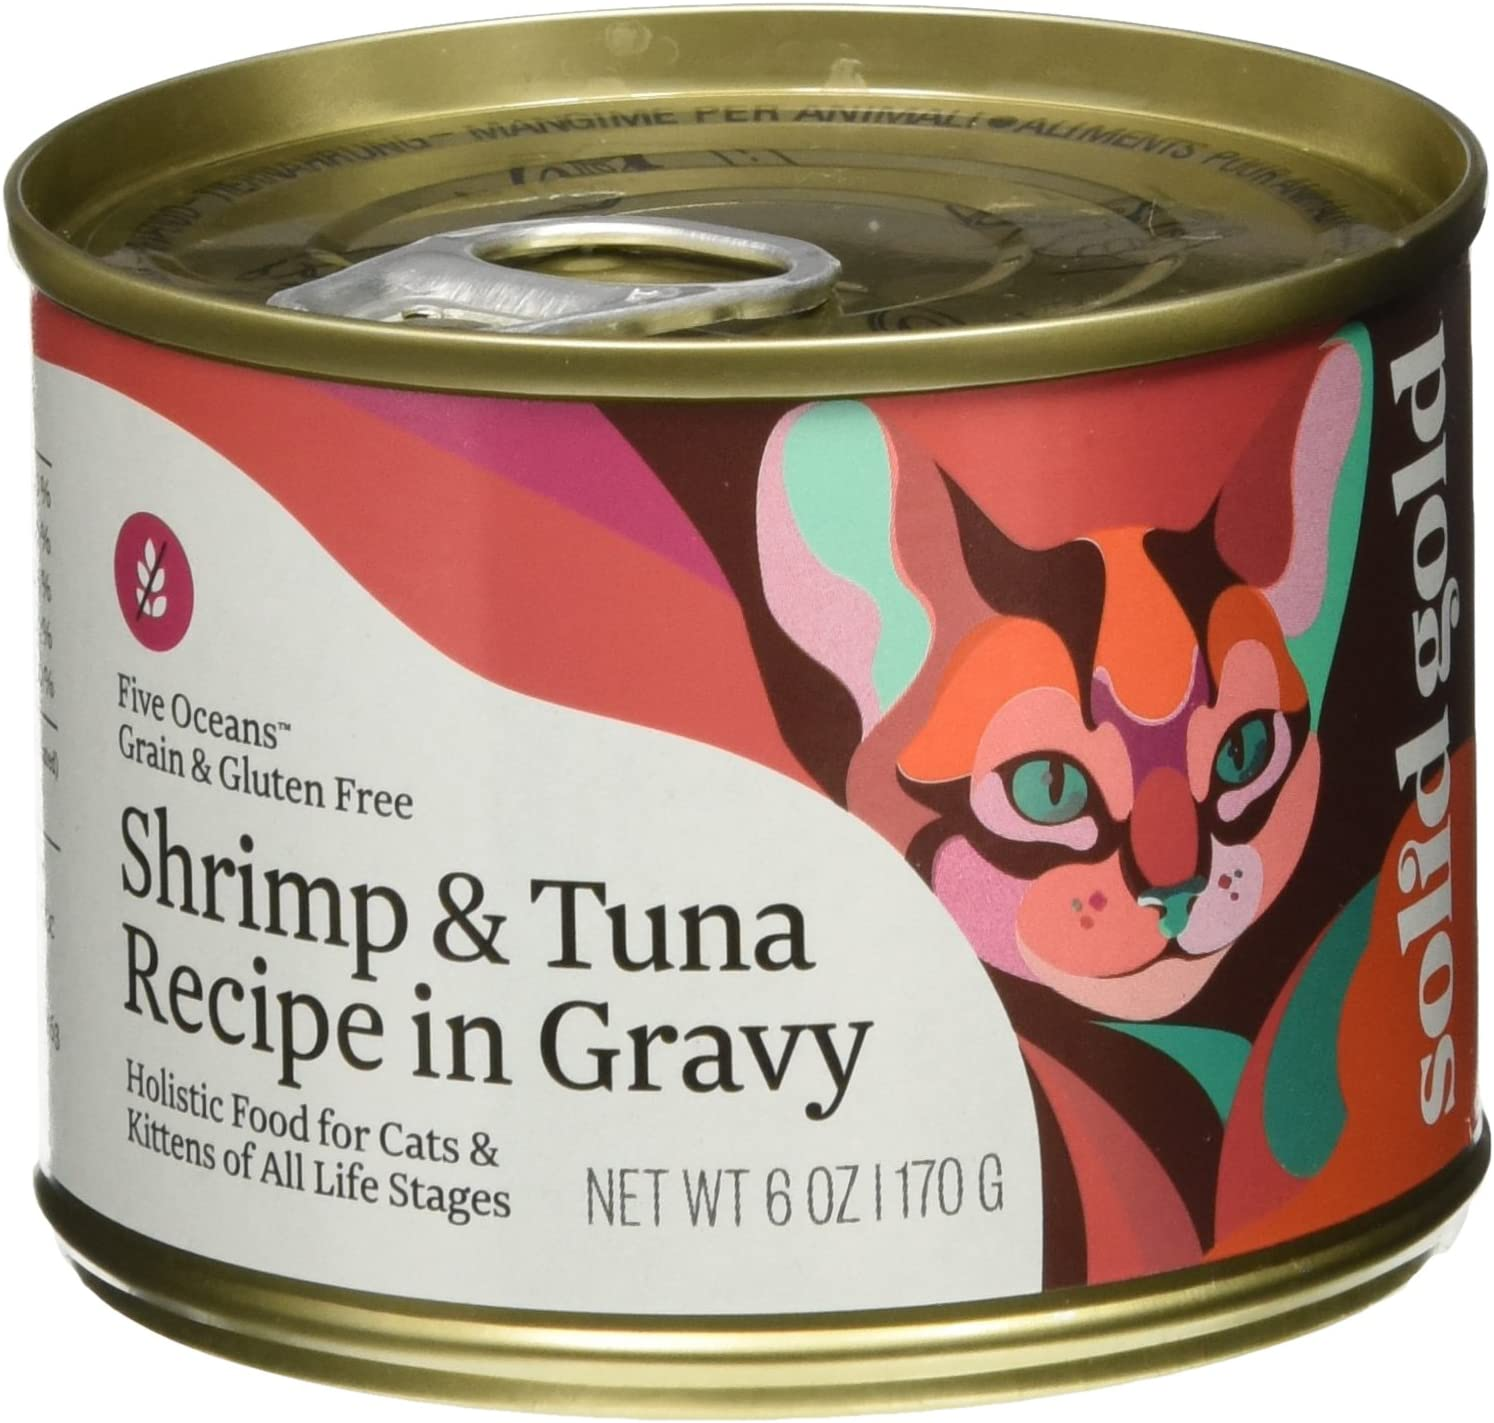 Solid Gold Five Oceans Holistic Wet Cat Food, Shrimp And Tuna Recipe In Gravy, 6 Oz Can, 8 Count